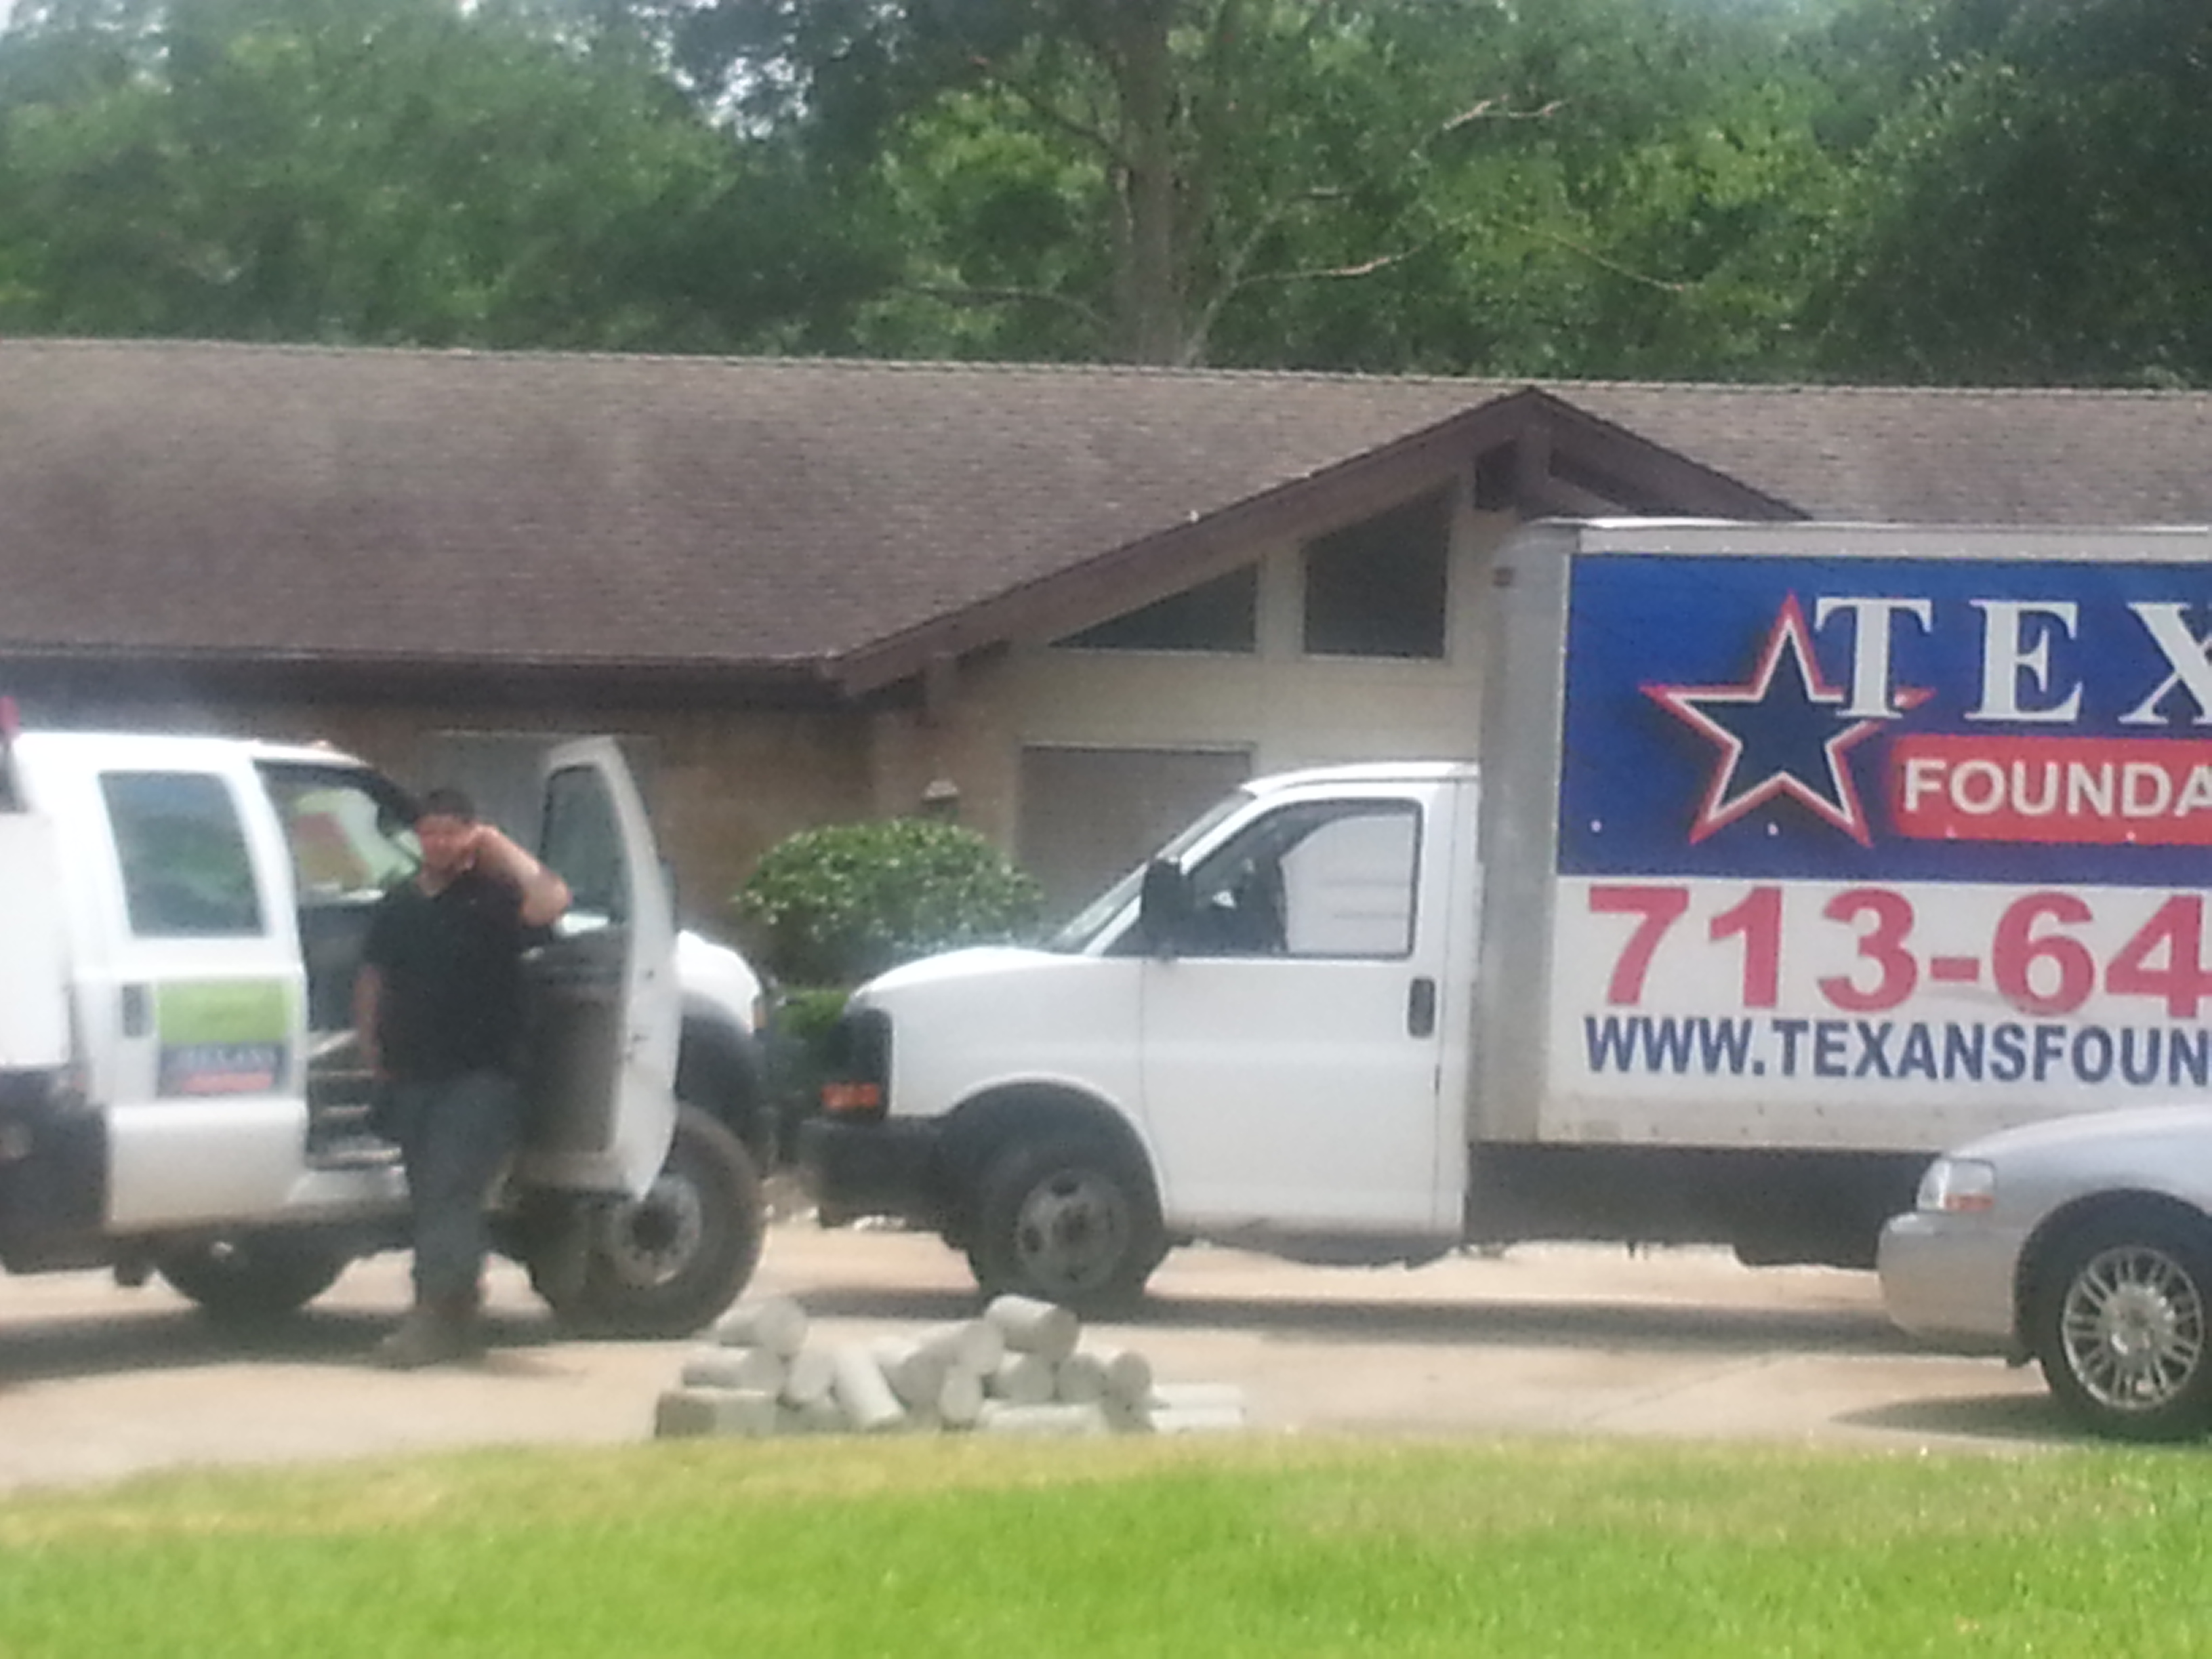 Texans Foundation Repair in Houston, TX 77087 - ChamberofCommerce.com